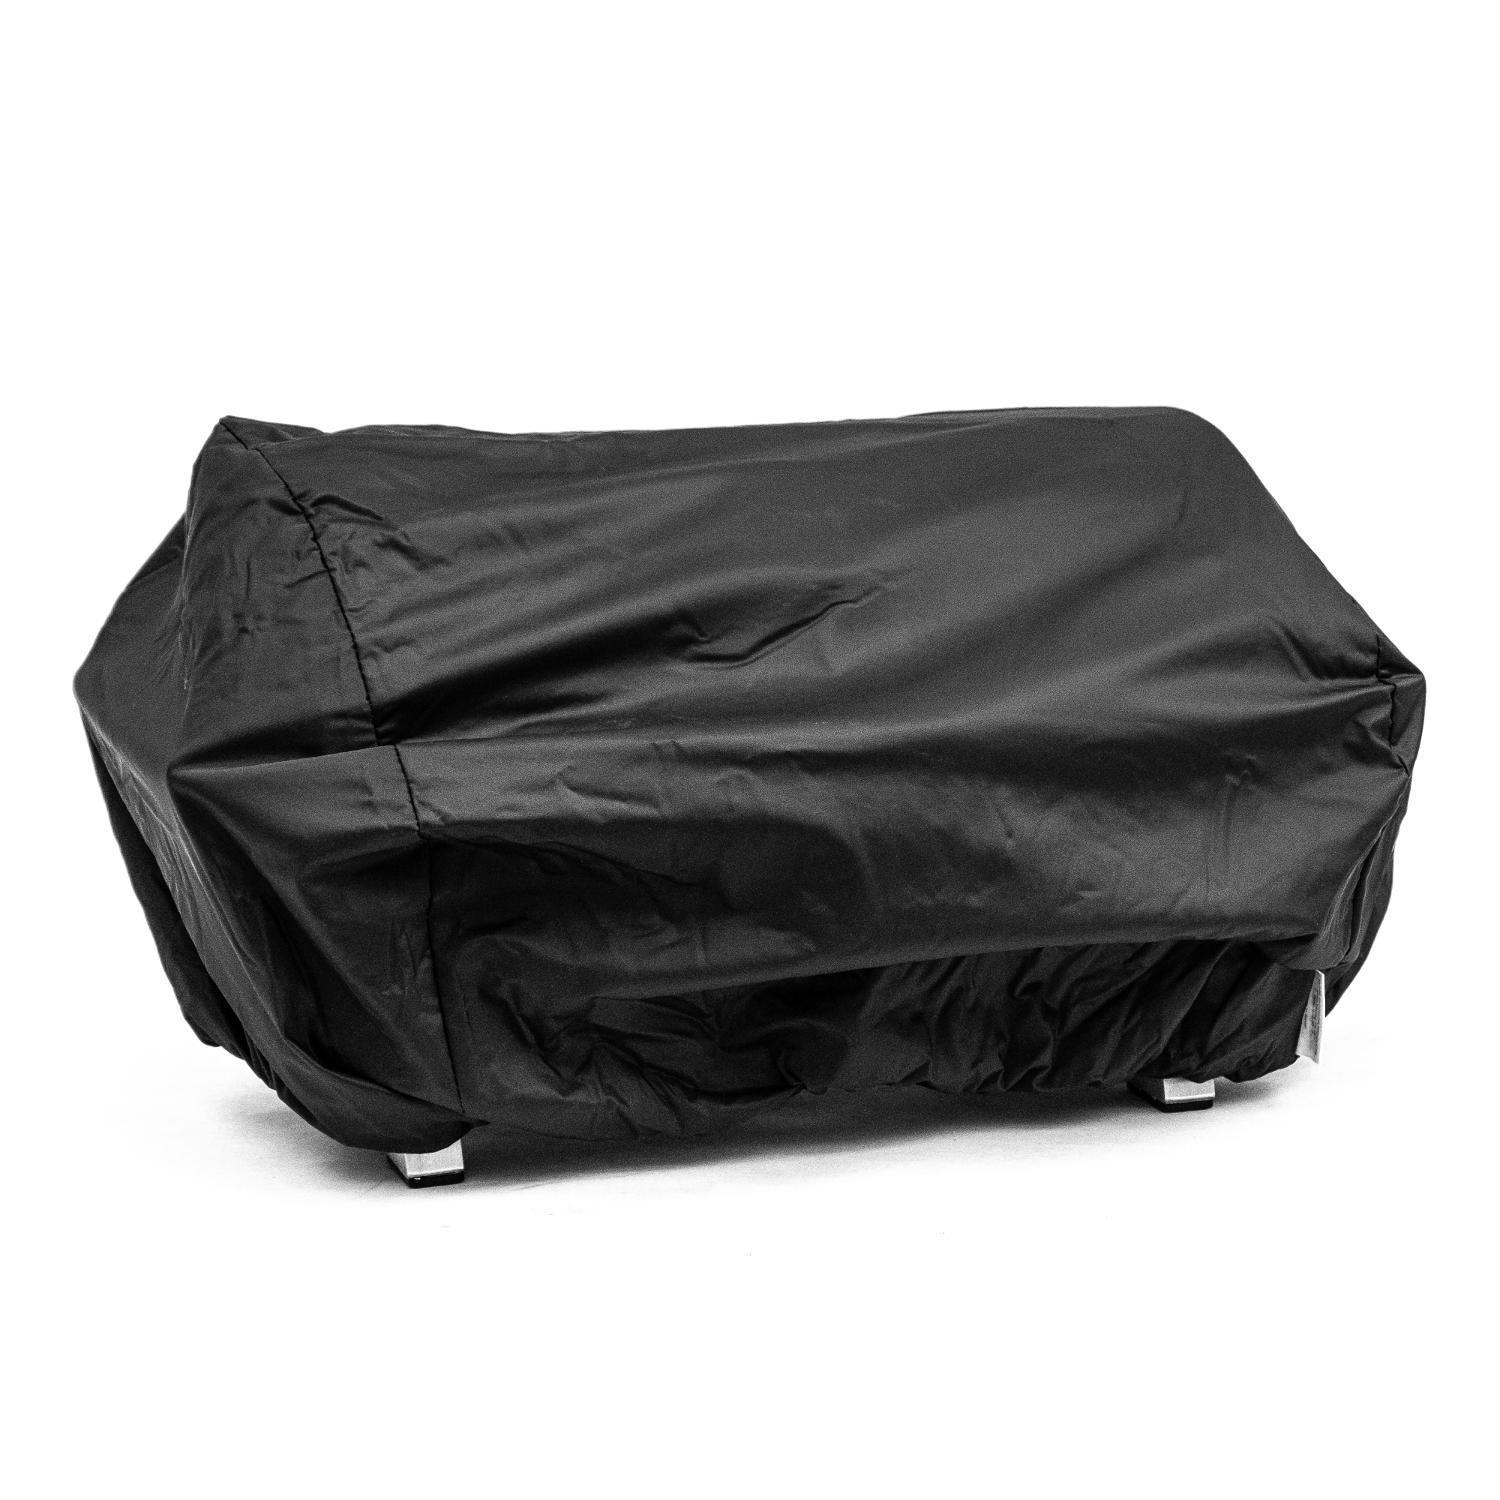 Blaze Grill Cover For Professional LUX Portable Gas Grills - 1PROPRT-CVR